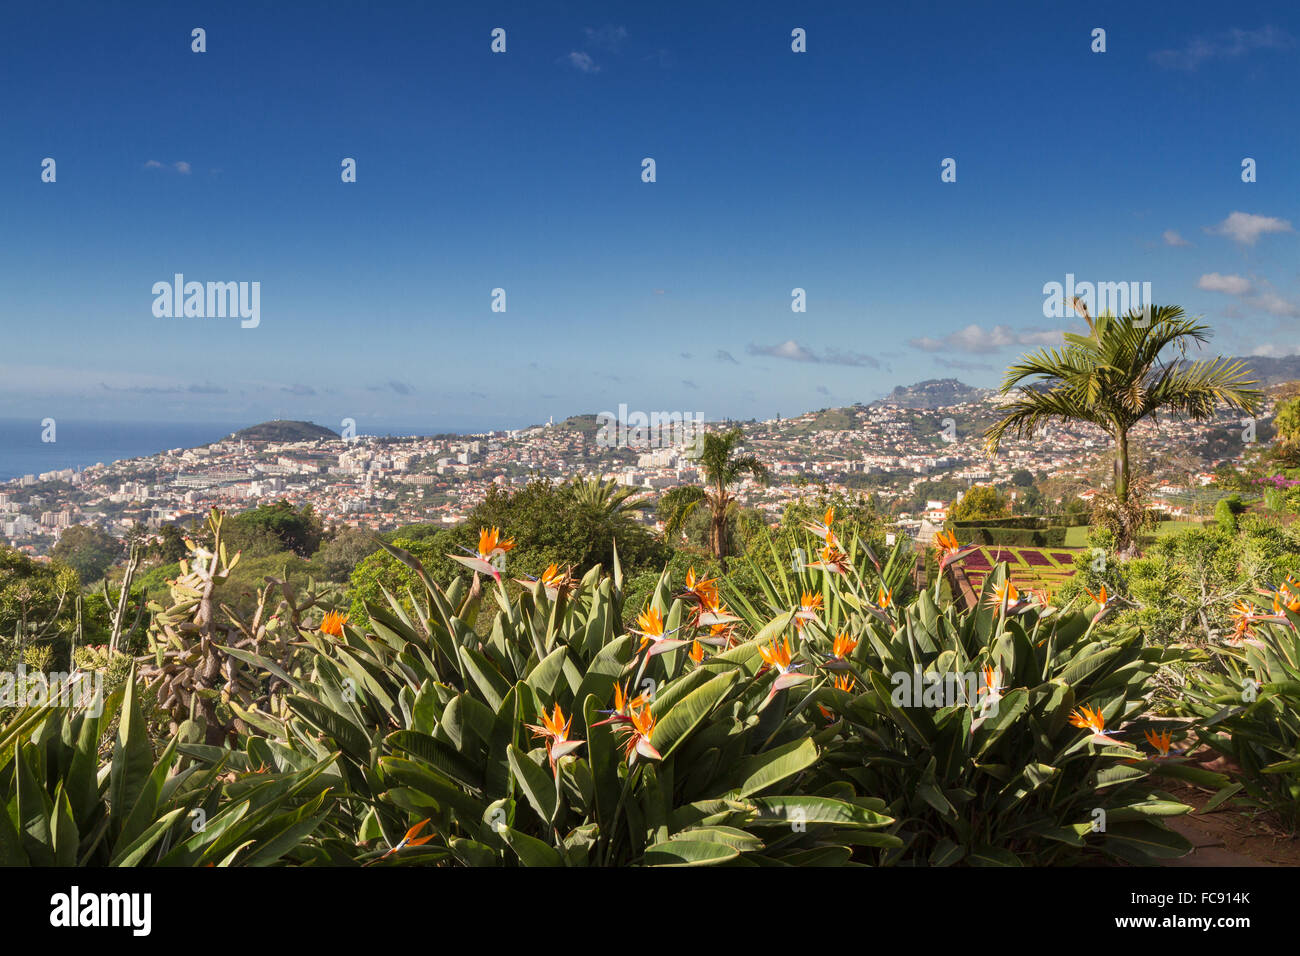 Viewpoint at the botanical garden of Funchal, Madeira - Stock Image